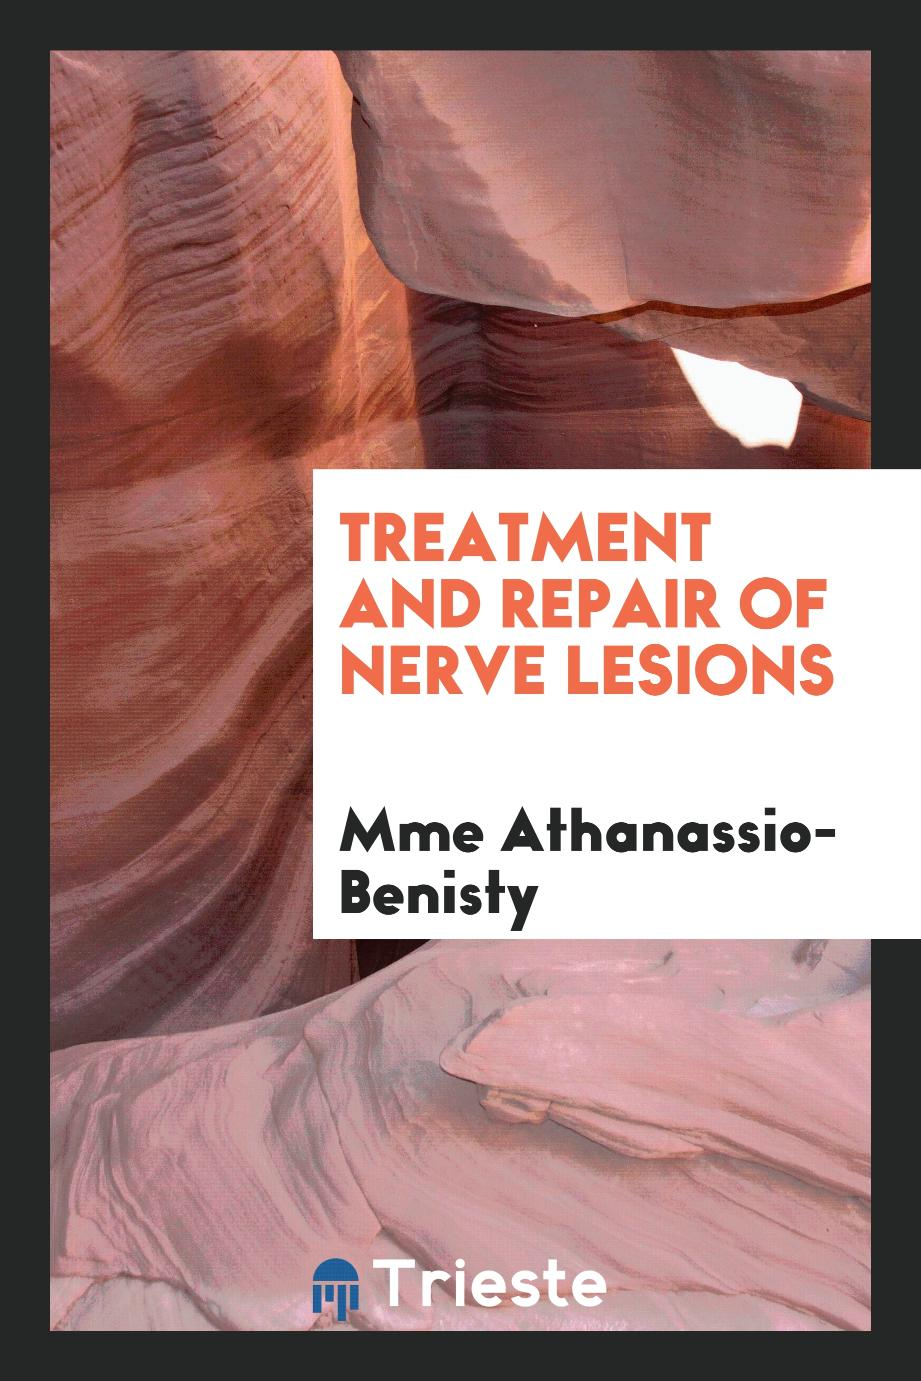 Treatment and repair of nerve lesions